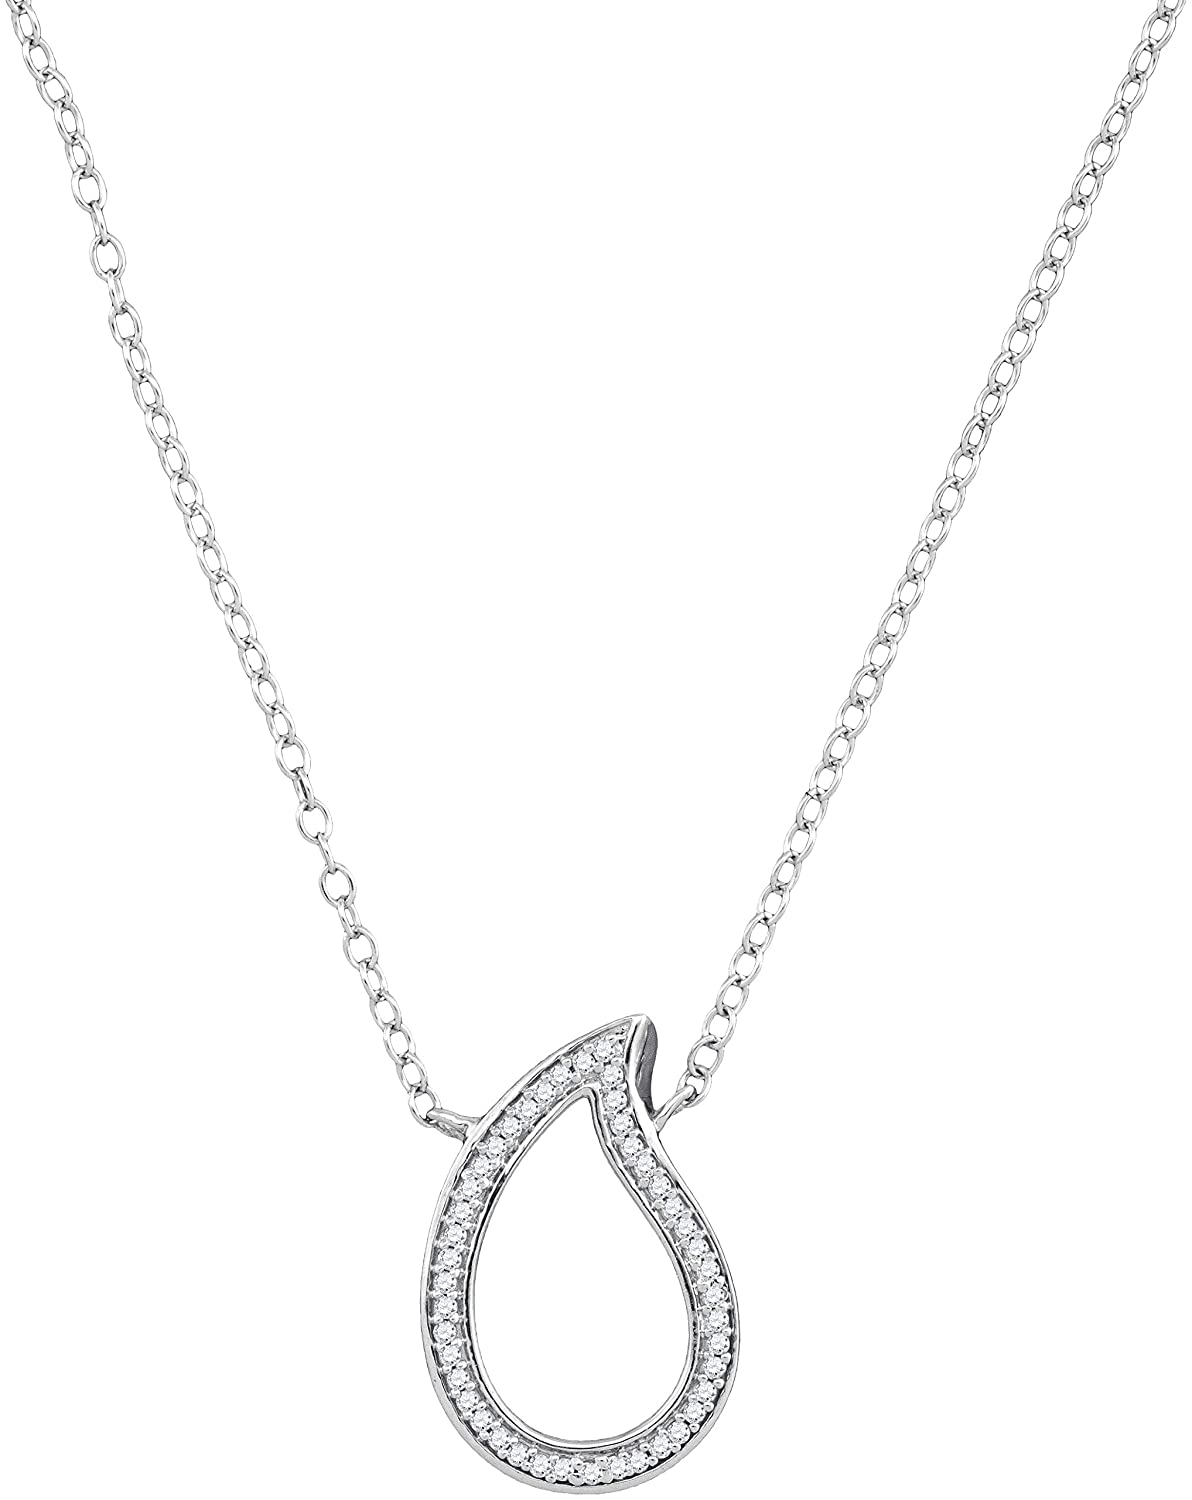 10kt White gold Womens Round Diamond Teardrop Pendant Necklace 1 10 Cttw